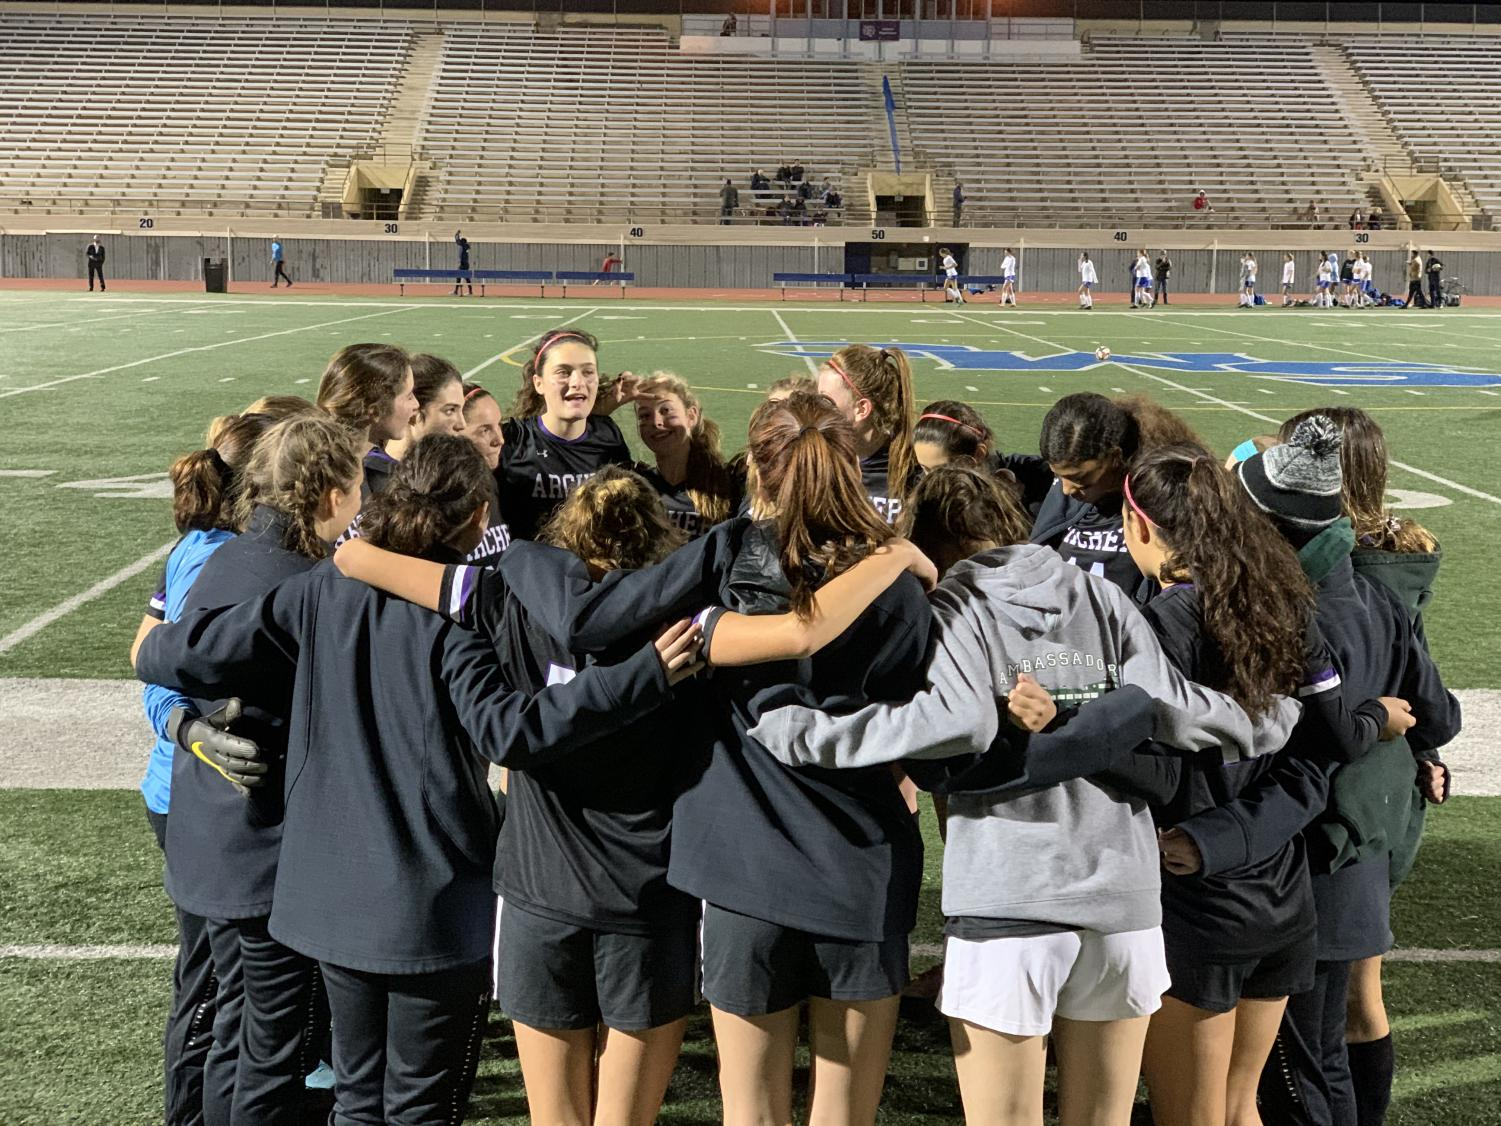 Captain Riley Adams gives a half time pep talk during the Archer varsity soccer game against Oakwood hosted at Santa Monica College. Archer beat Oakwood 7-0.